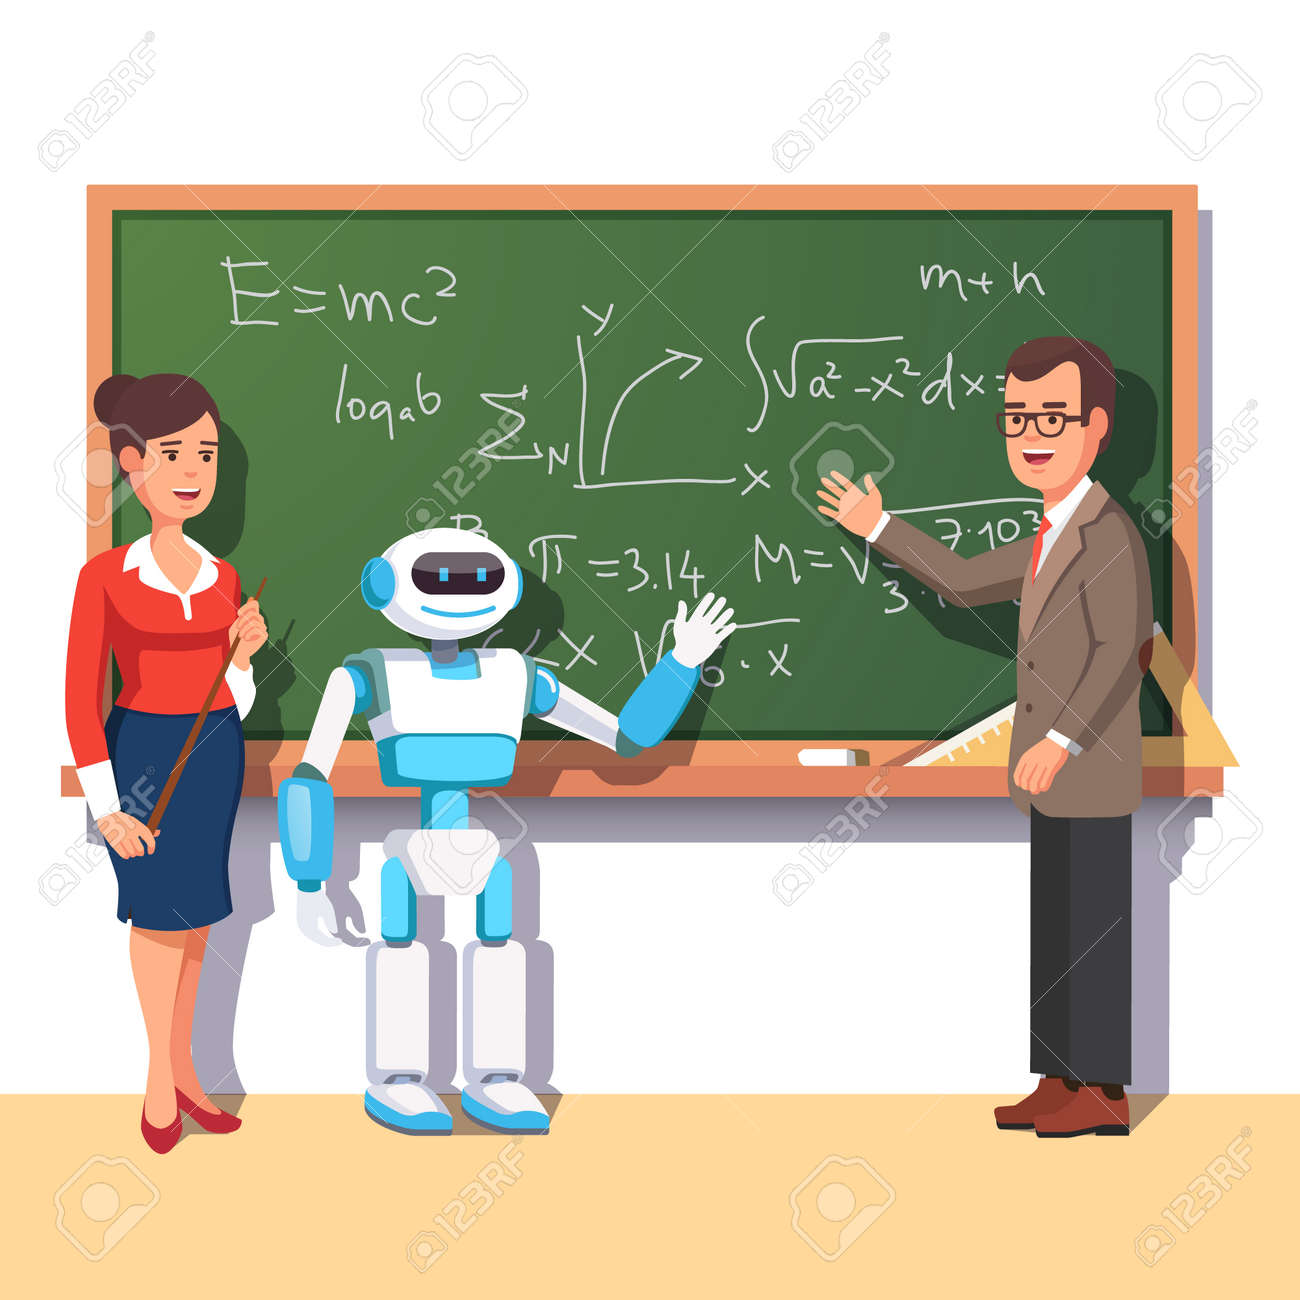 Modern robot helping teachers in the physics class at the chalkboard with formulas. Flat style vector illustration isolated on white background. - 52901864